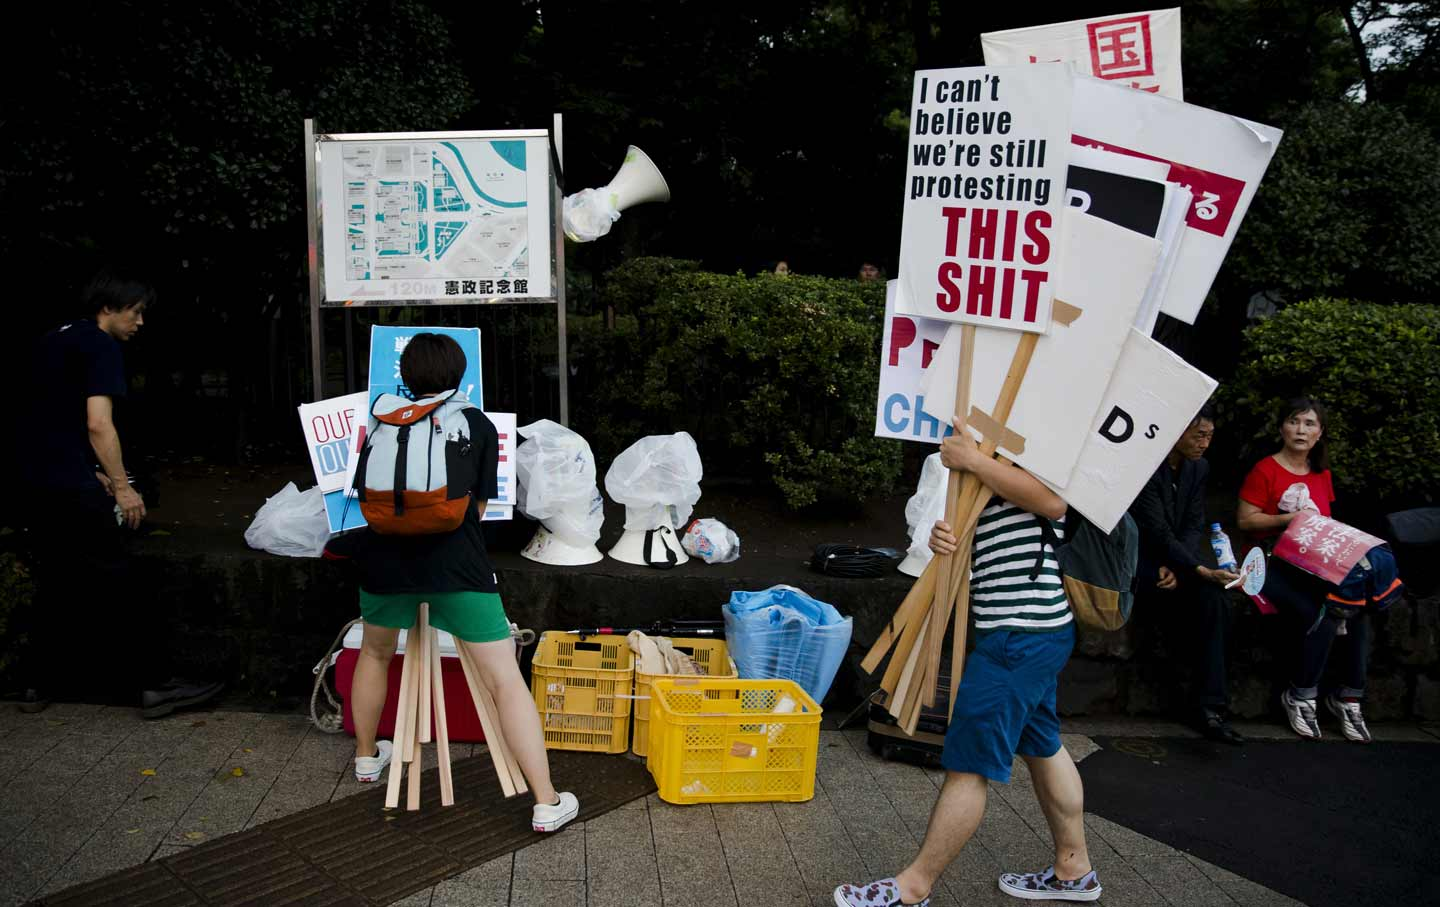 Members of the antiwar group SEALDs (Students Emergency Action for Liberal Democracy) rally outside Japan's parliament building, August 21, 2015.